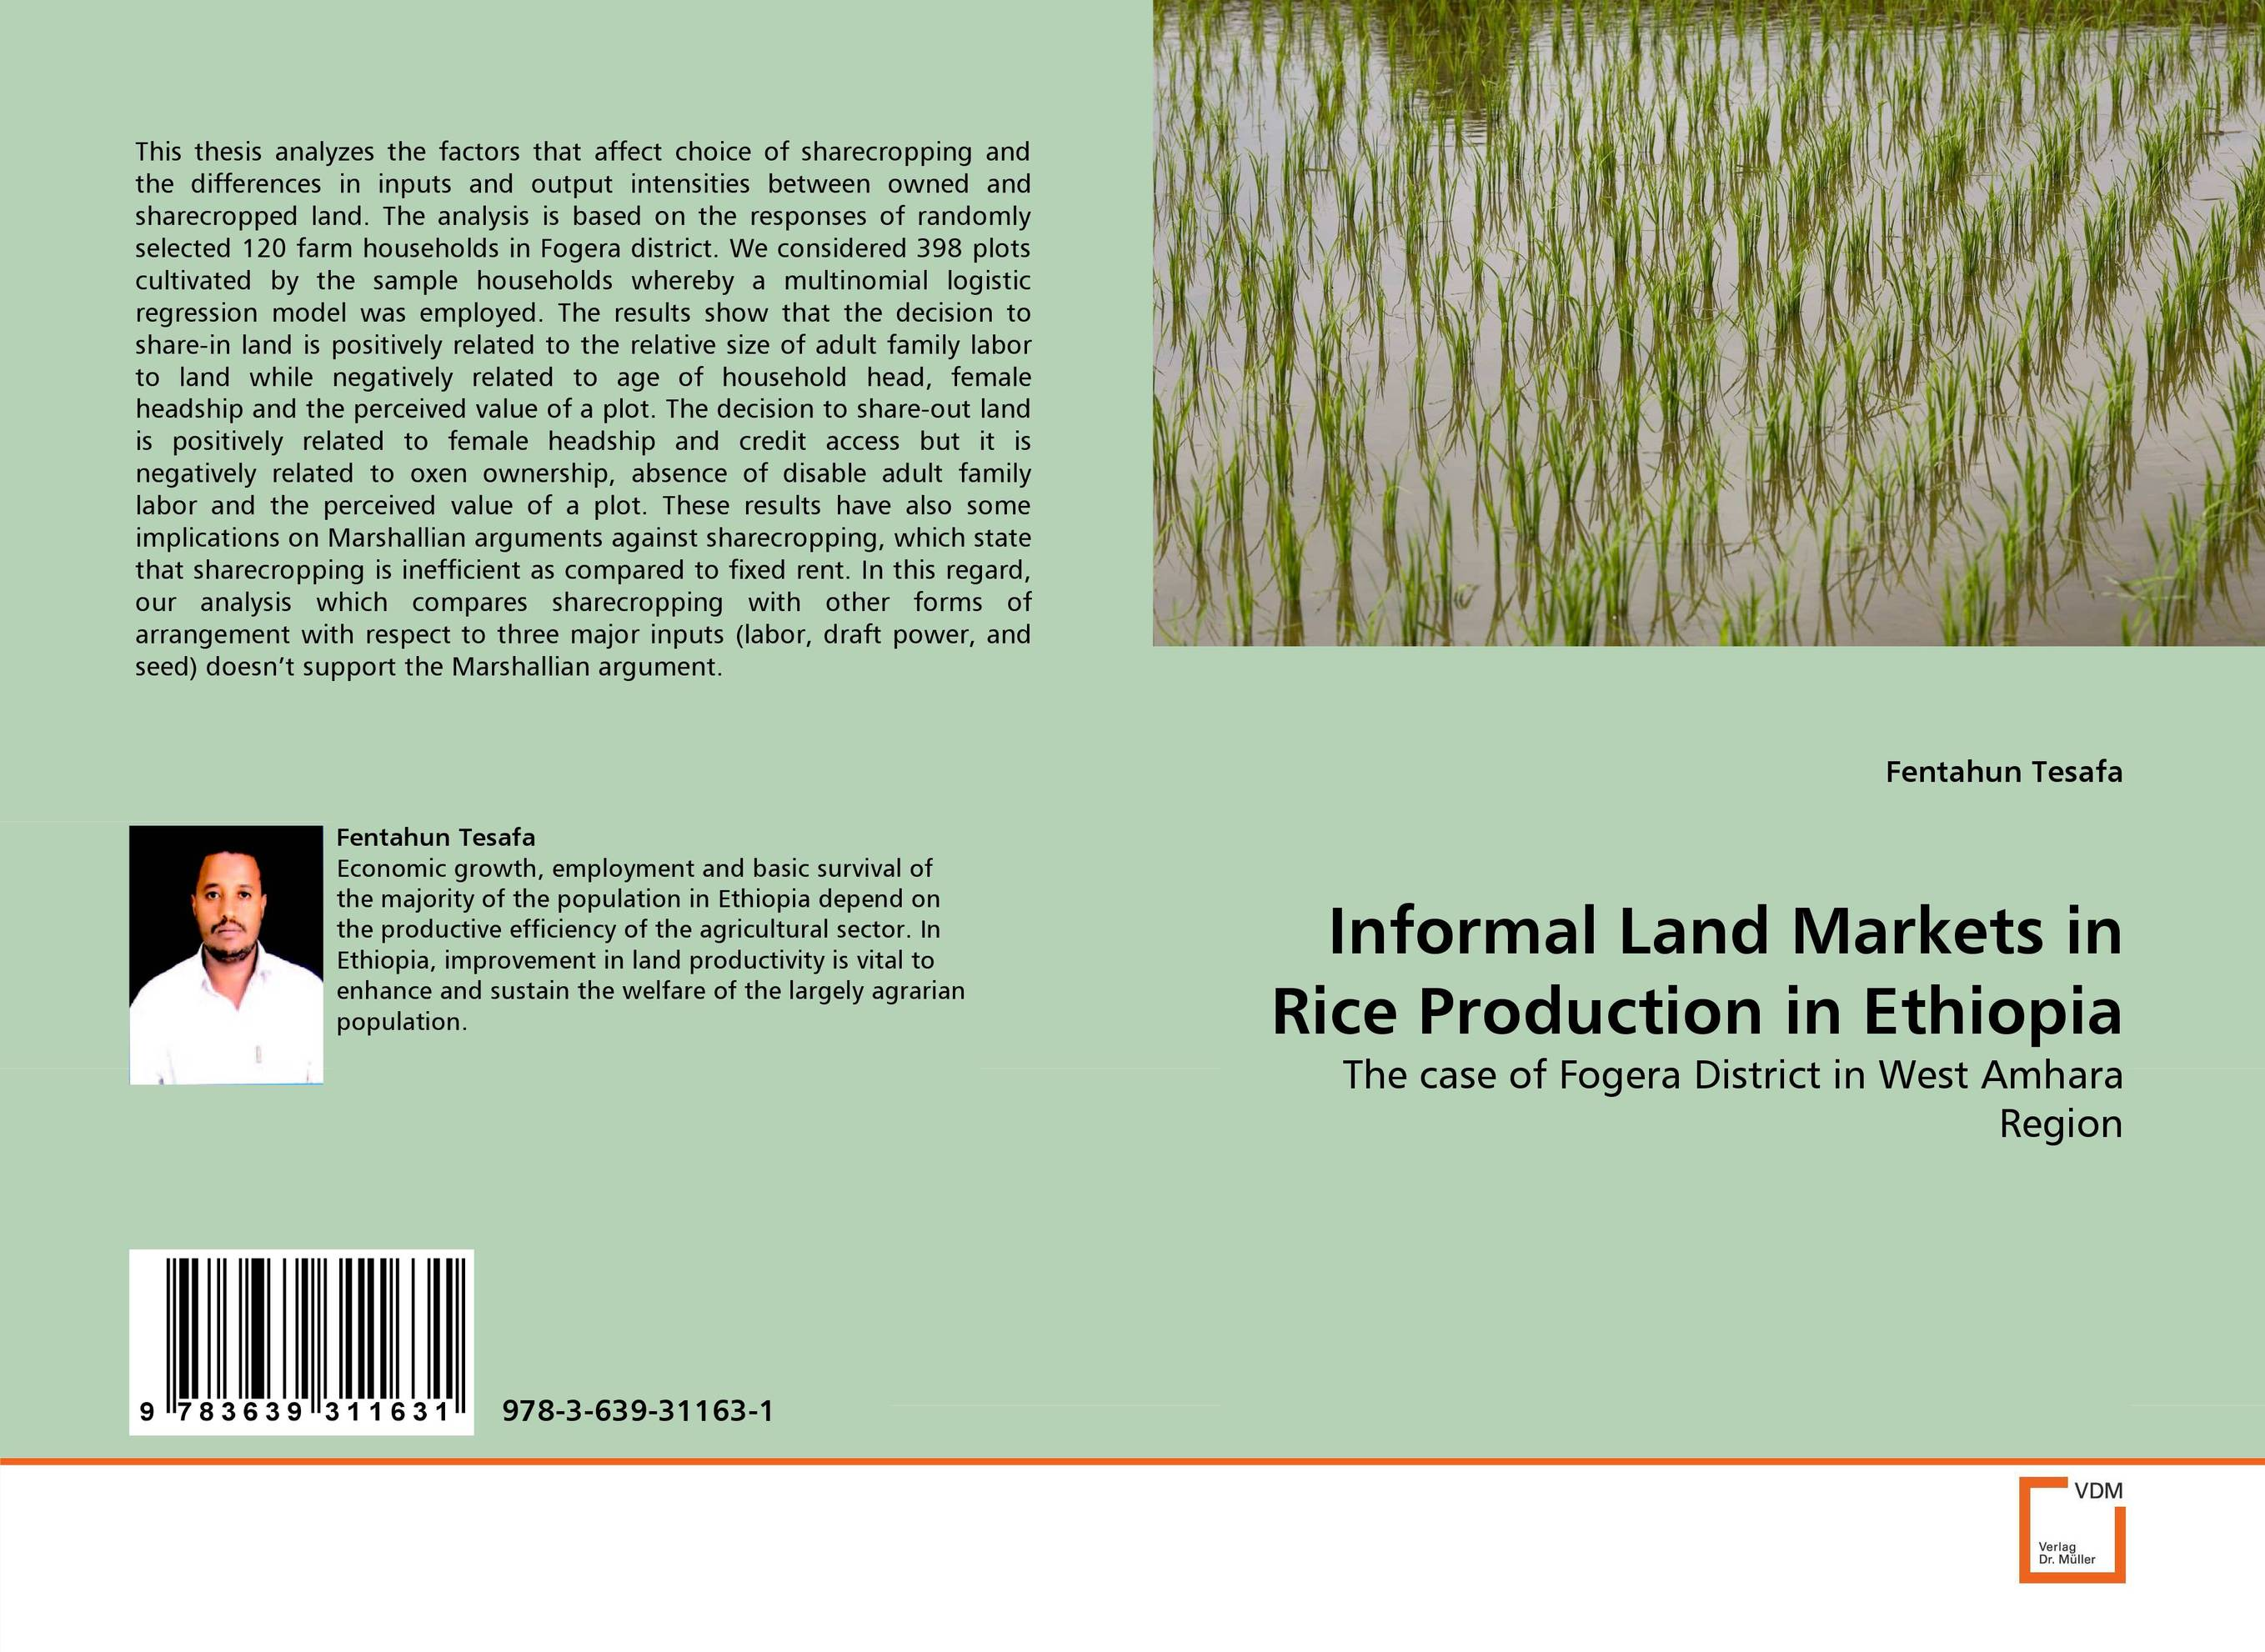 Informal Land Markets in Rice Production in Ethiopia informal land markets in rice production in ethiopia